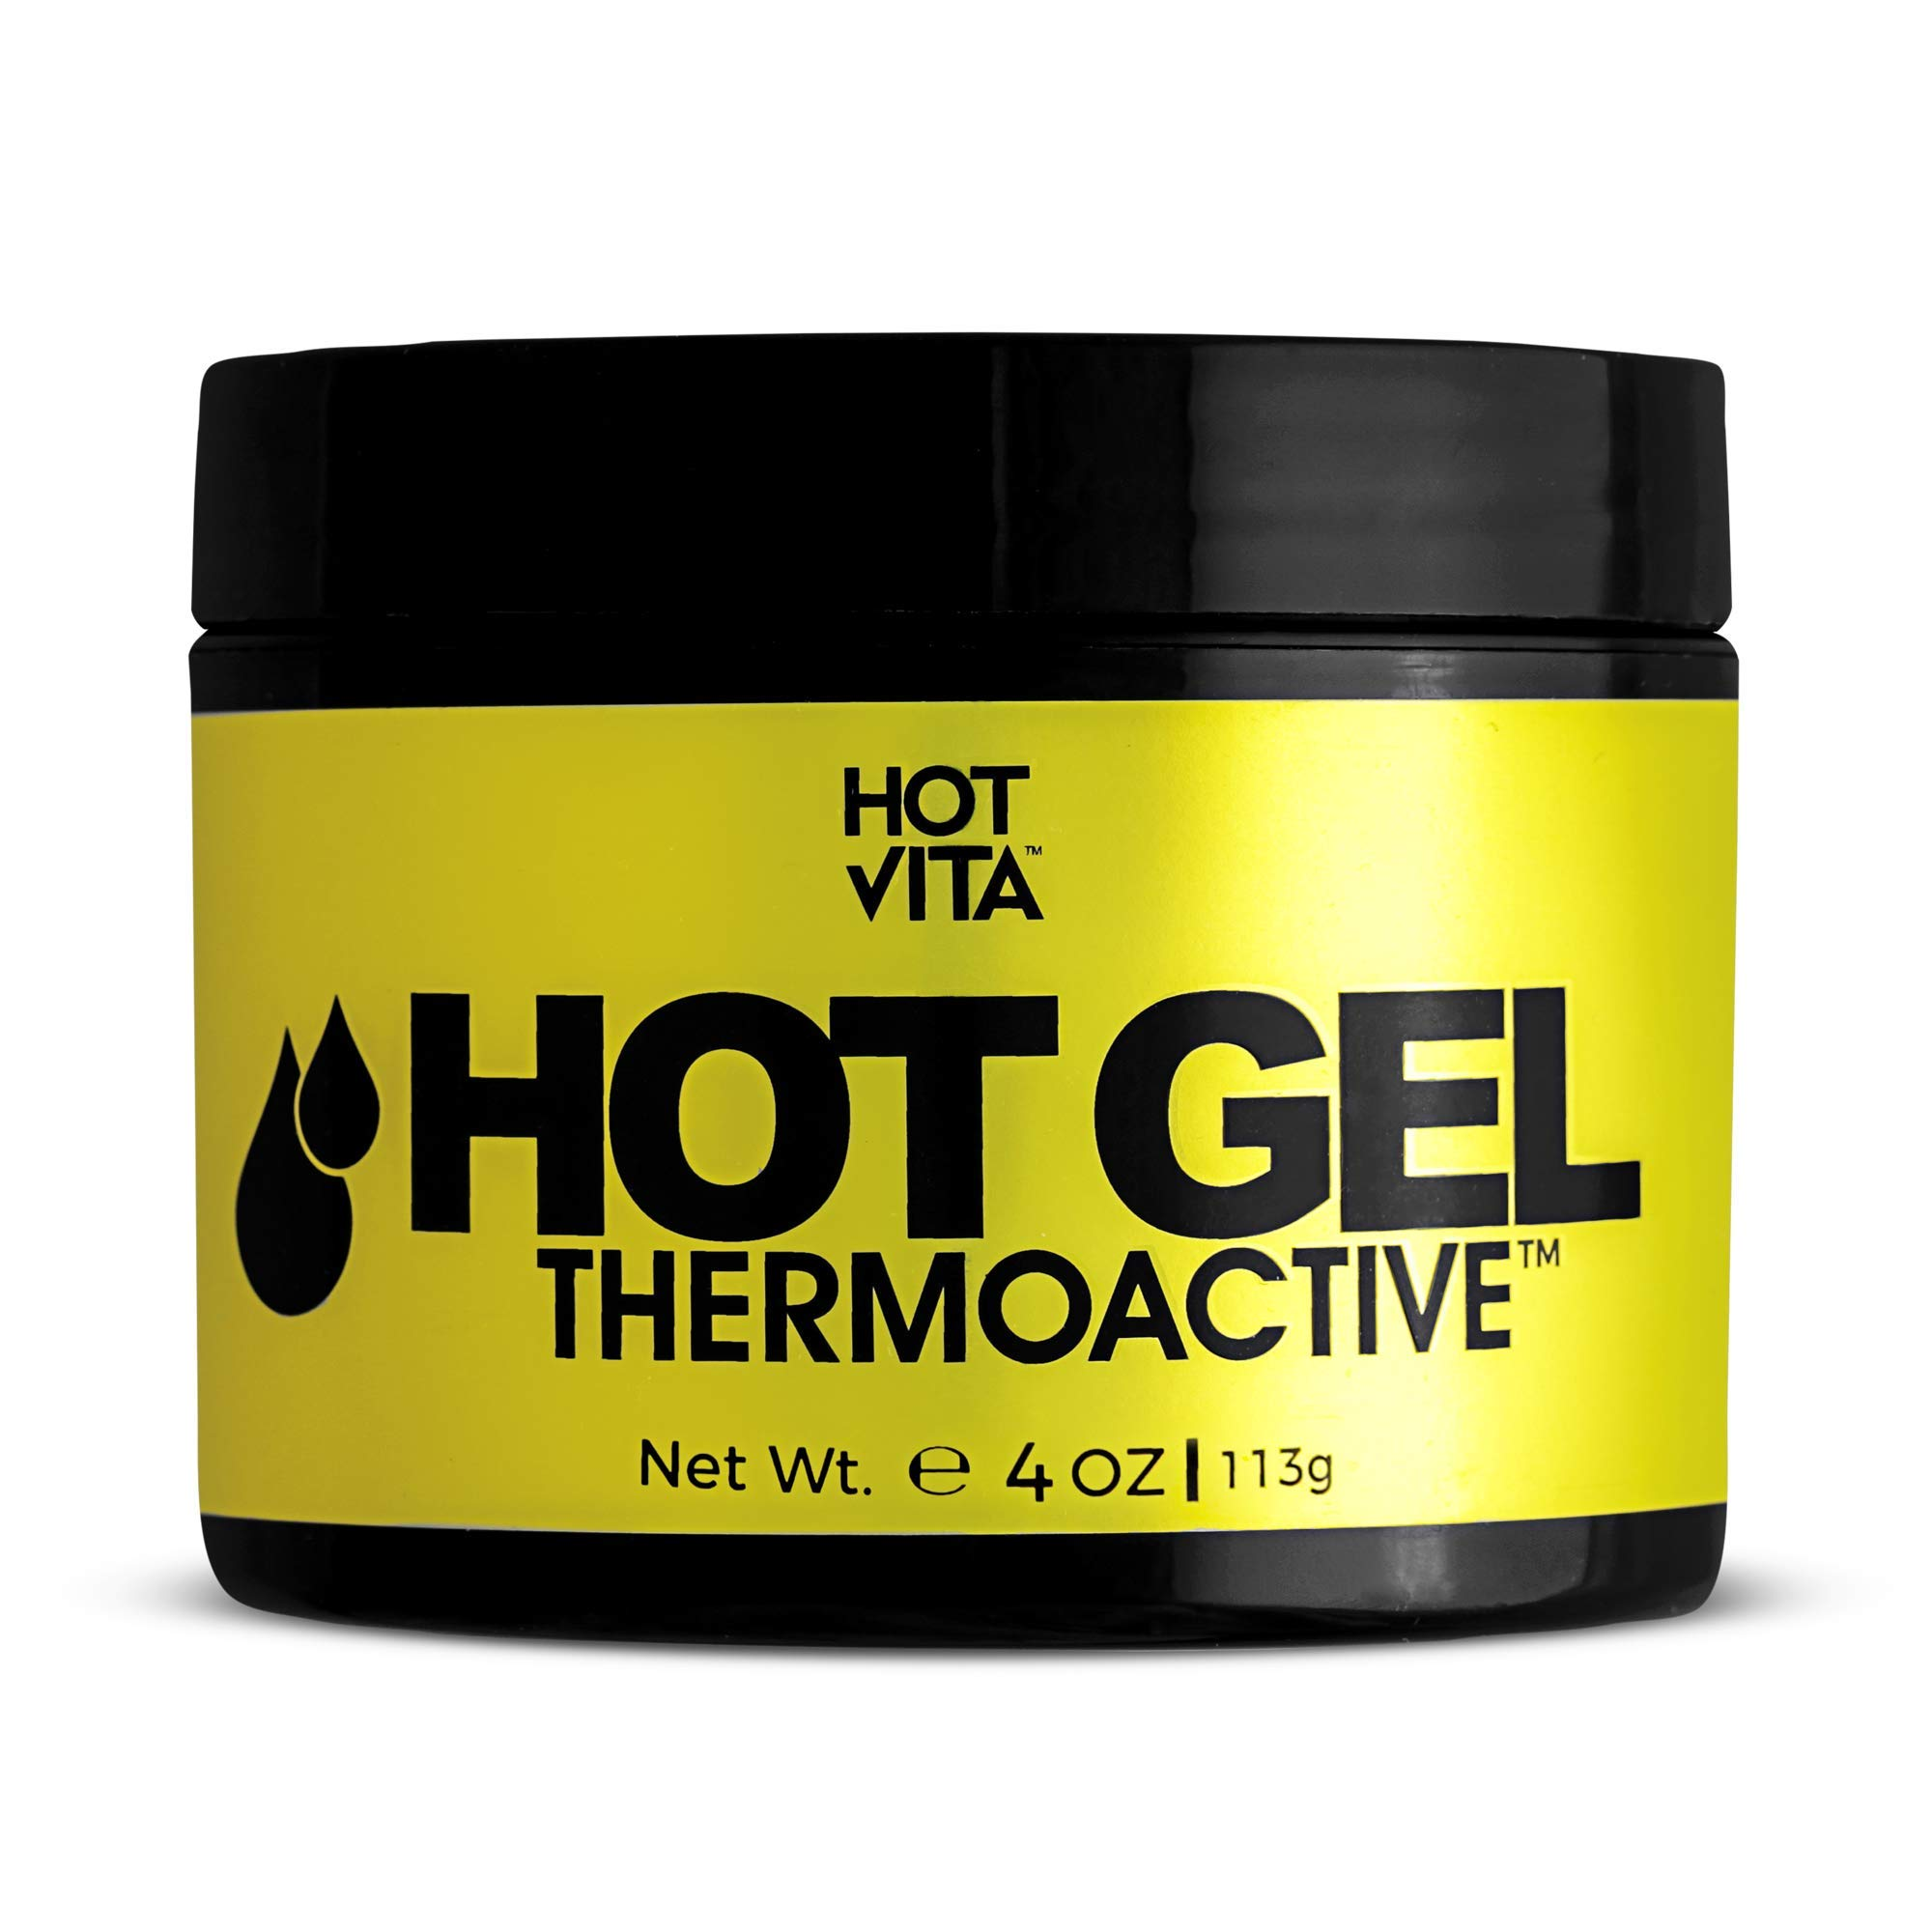 Hot Vita Hot Gel ThermoActive - Workout Enhancer Sweat Cream with Coconut oil, Jojoba Seed Oil, Coffee Arabica Seed Extract, Olive Oil and Green Tea Leaf Extract for Women (4 Ounce) by Hot Vita